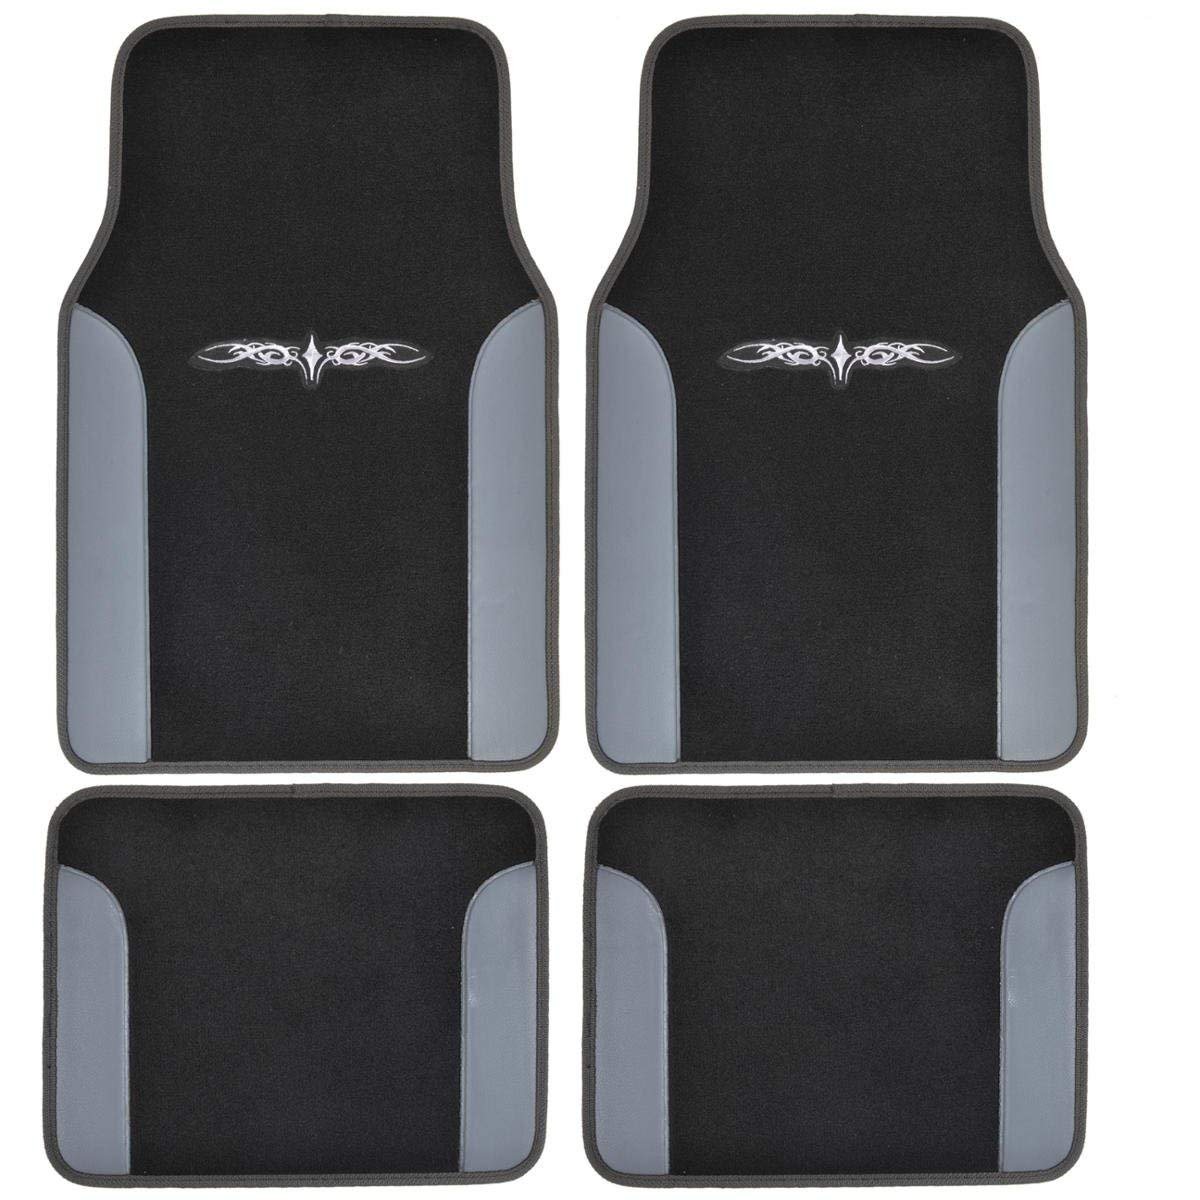 A Set of 4 Universal Fit Plush Carpet with Vinyl Trim Floor Mats For Cars / Trucks - Tribal Gray